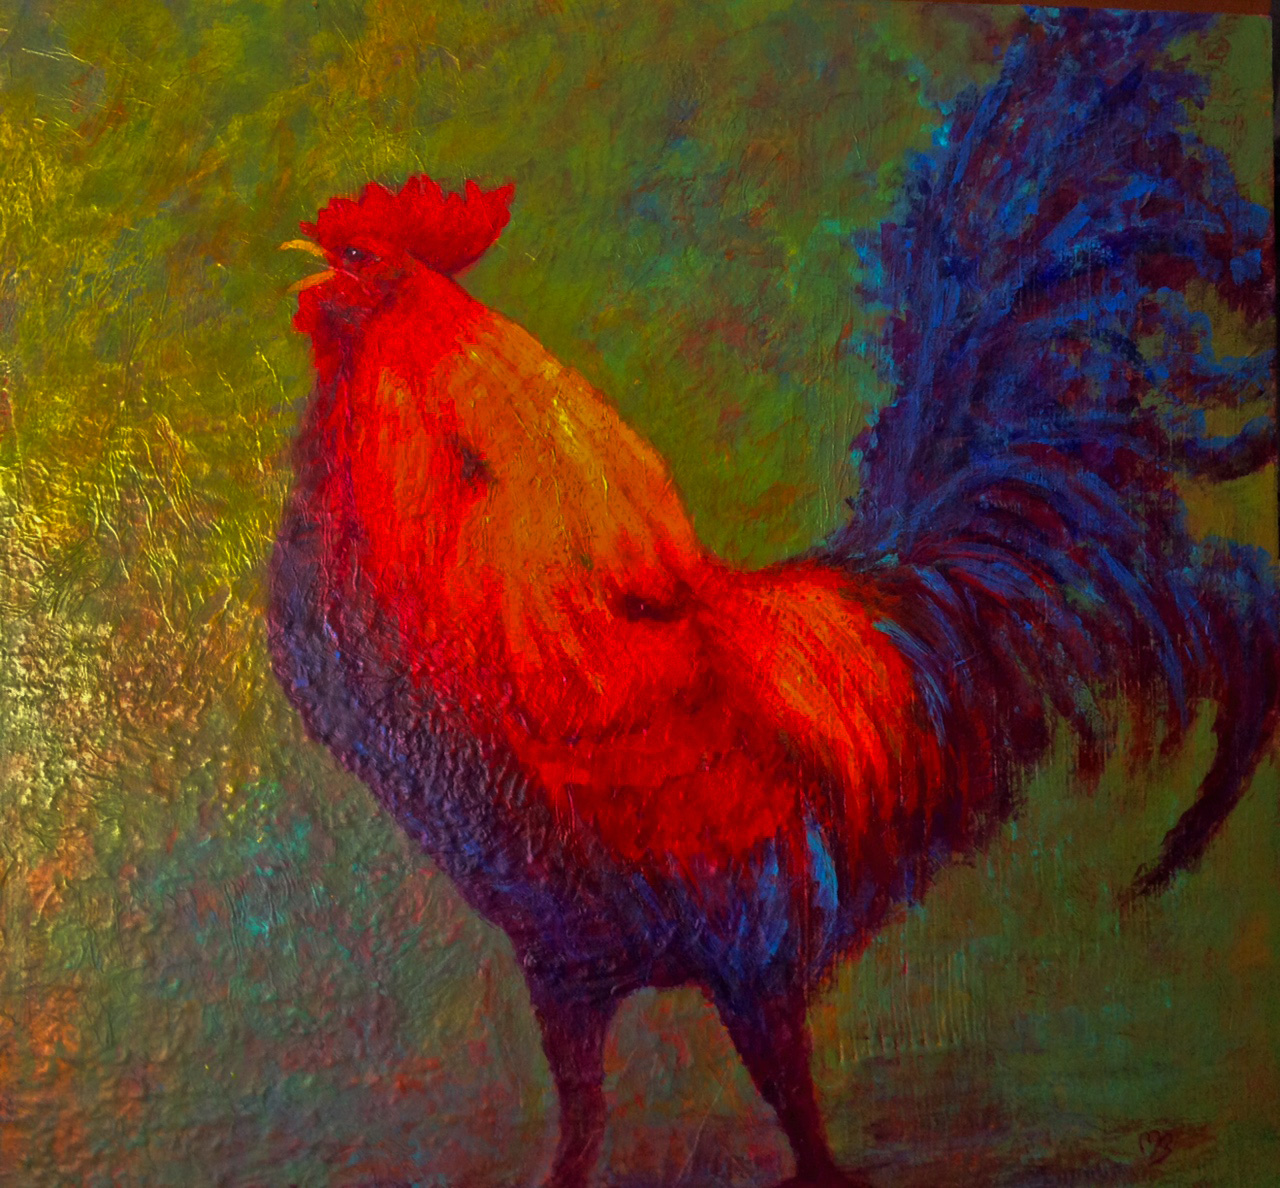 Crowing Rooster on Textured Background